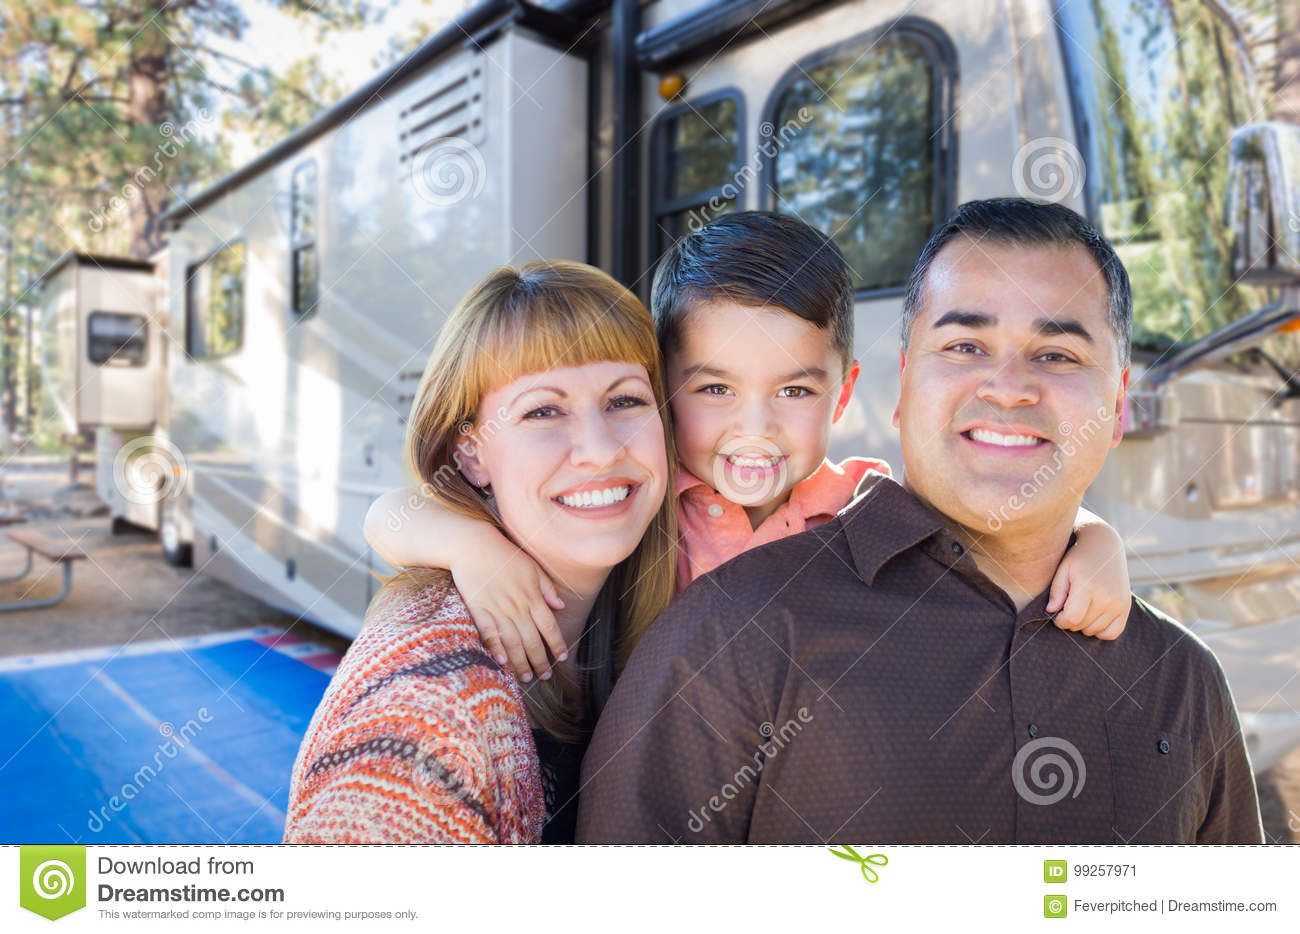 Happy Young Mixed Race Family In Front of Their Beautiful RV At